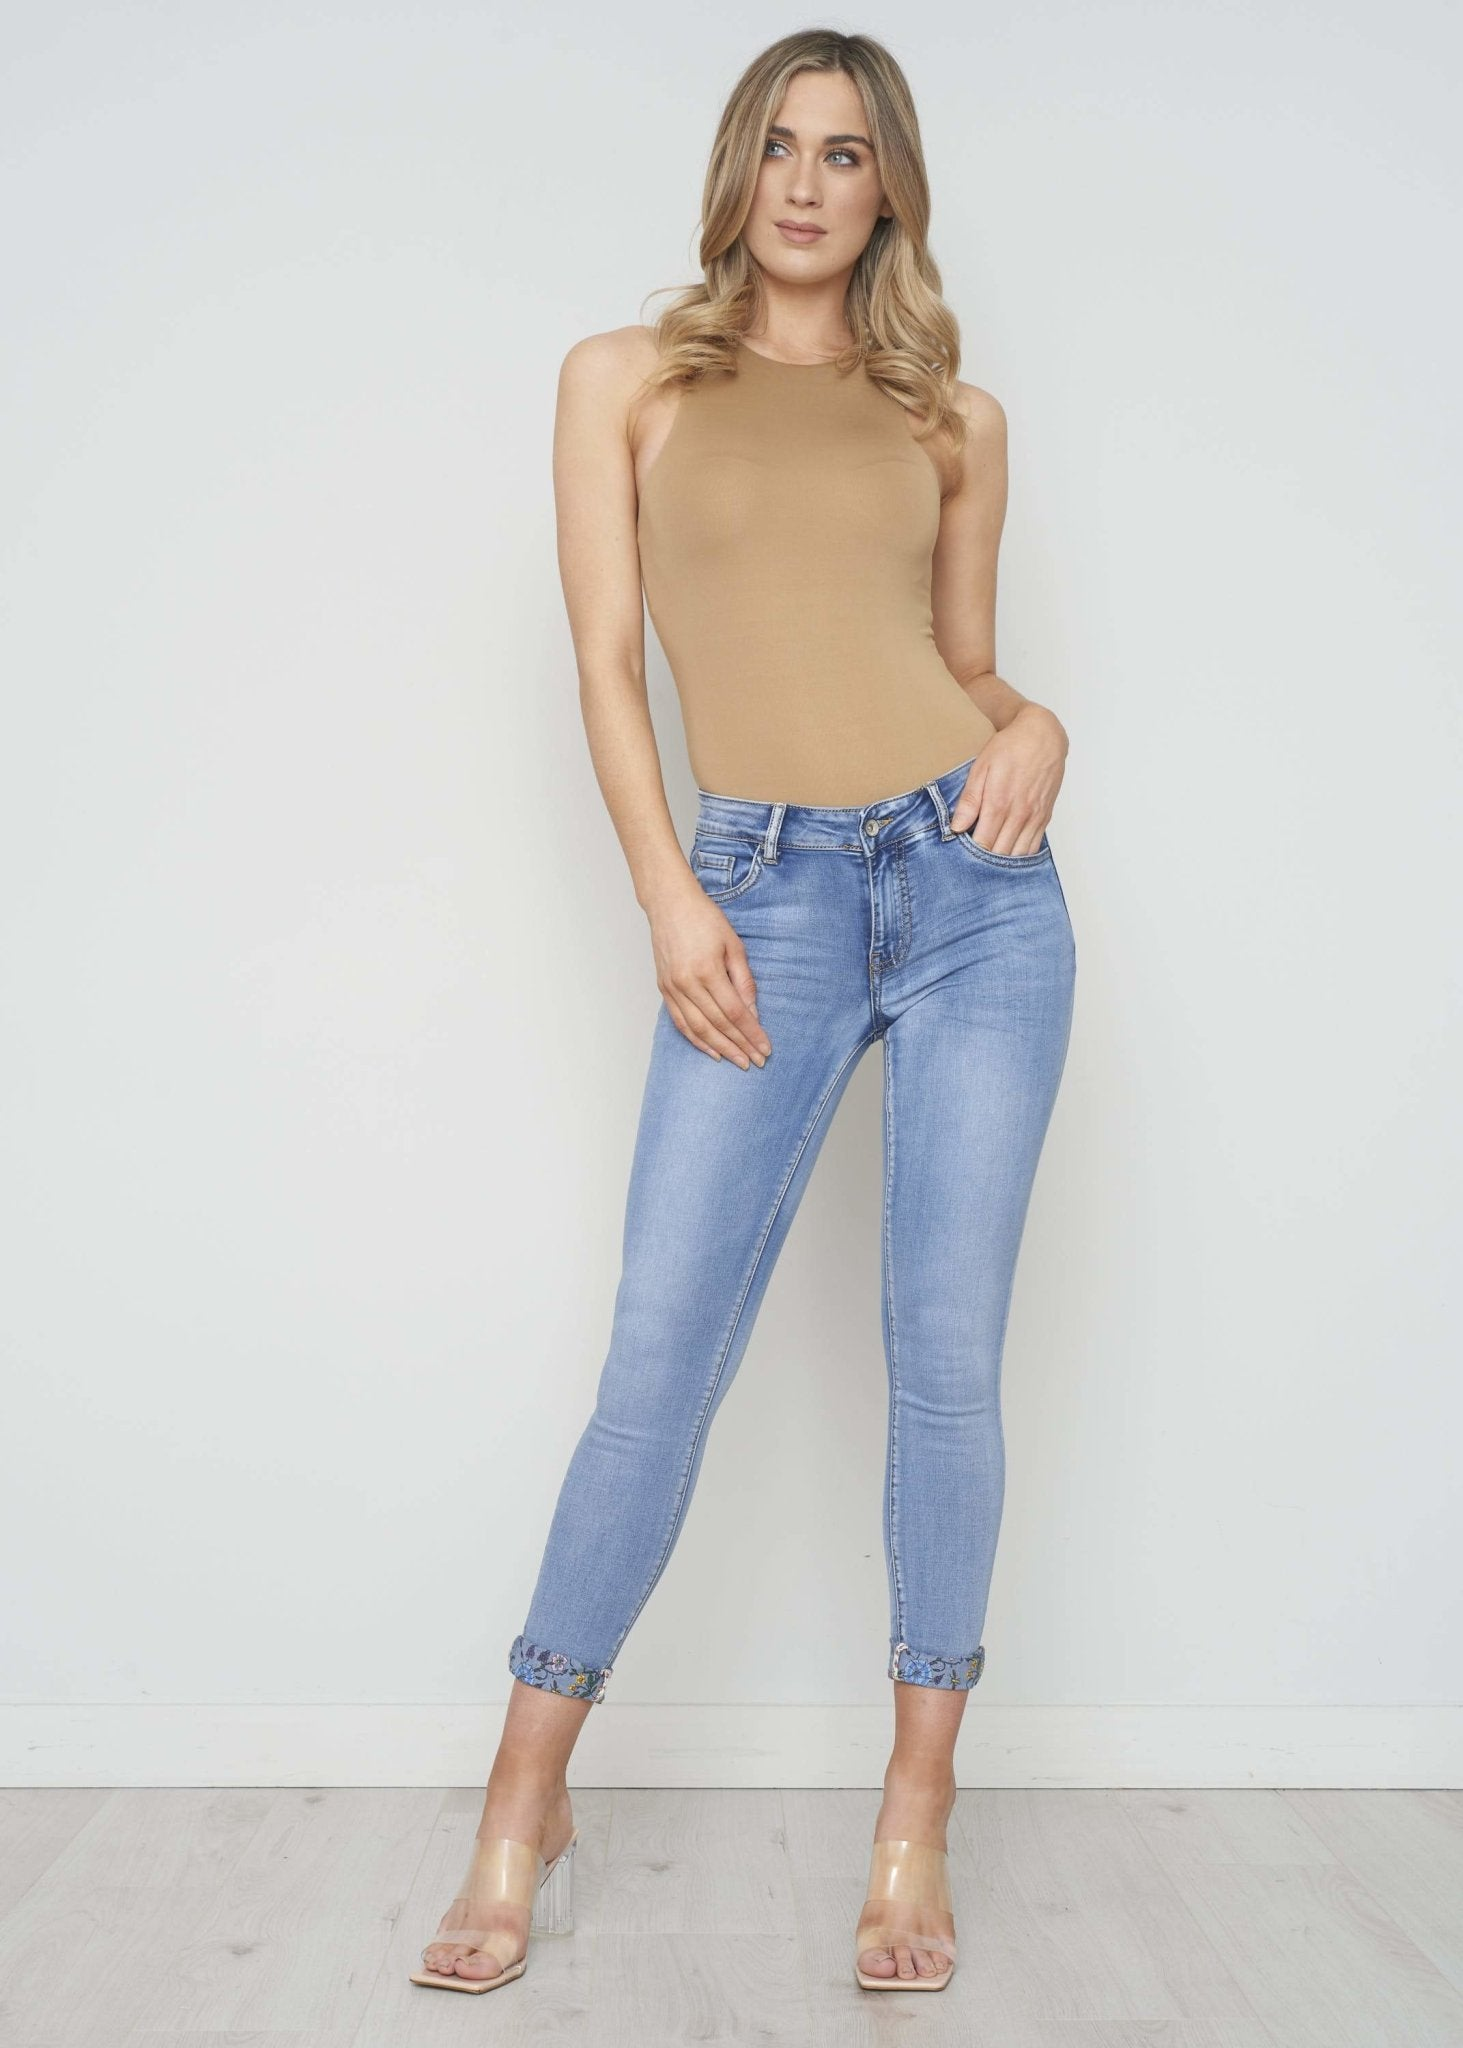 Lucy Floral Turn Up Jean In Light Wash - The Walk in Wardrobe